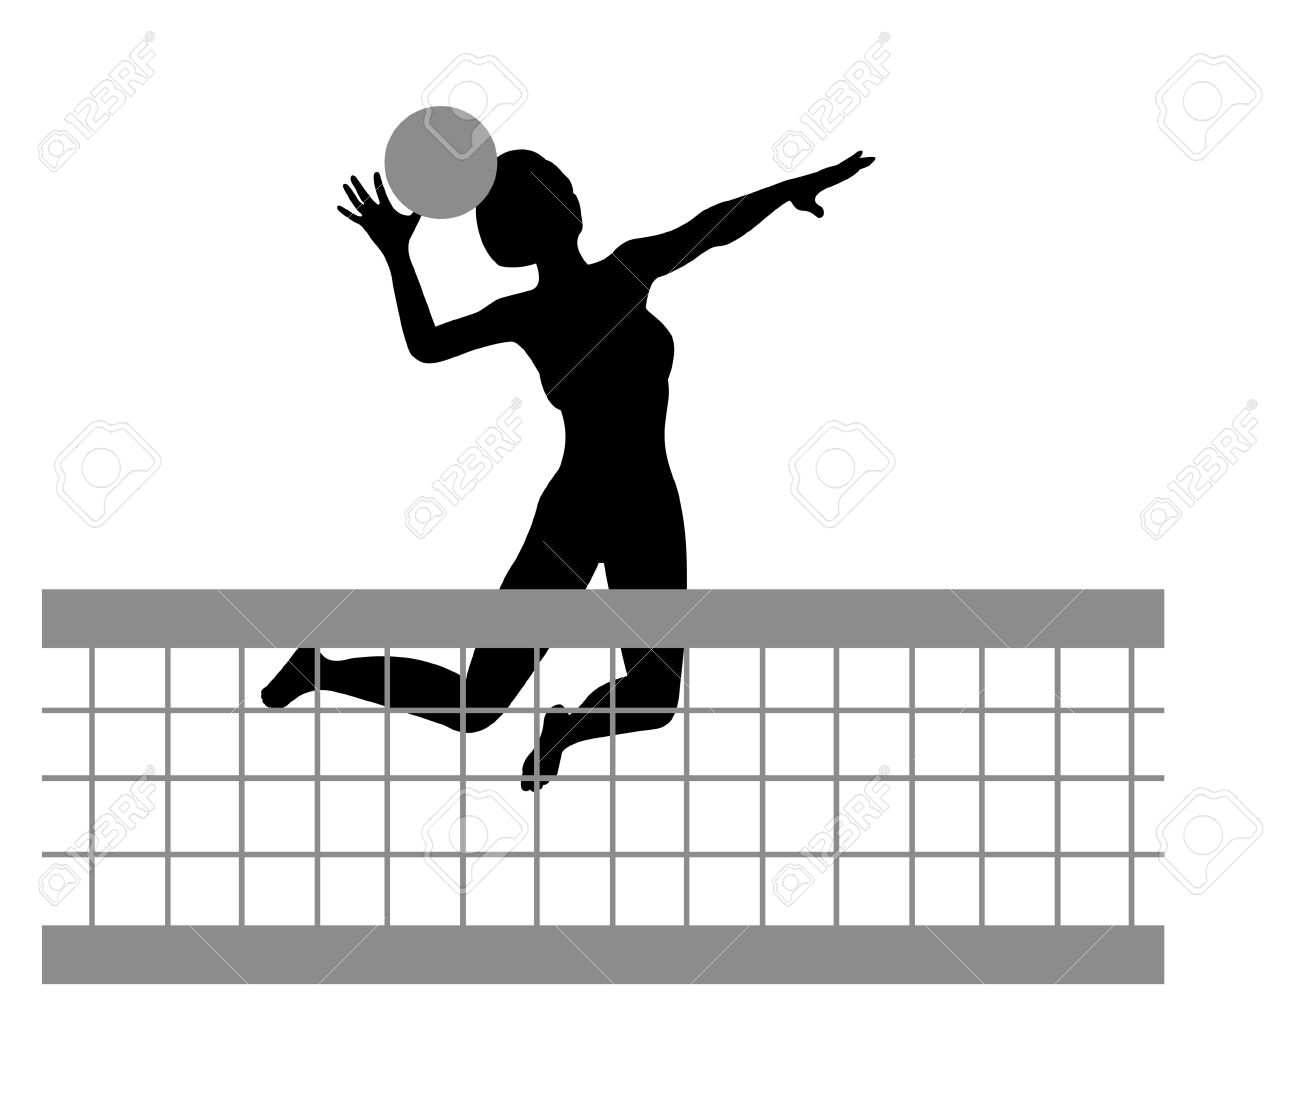 Volleyball Net Silhouette Clipart.